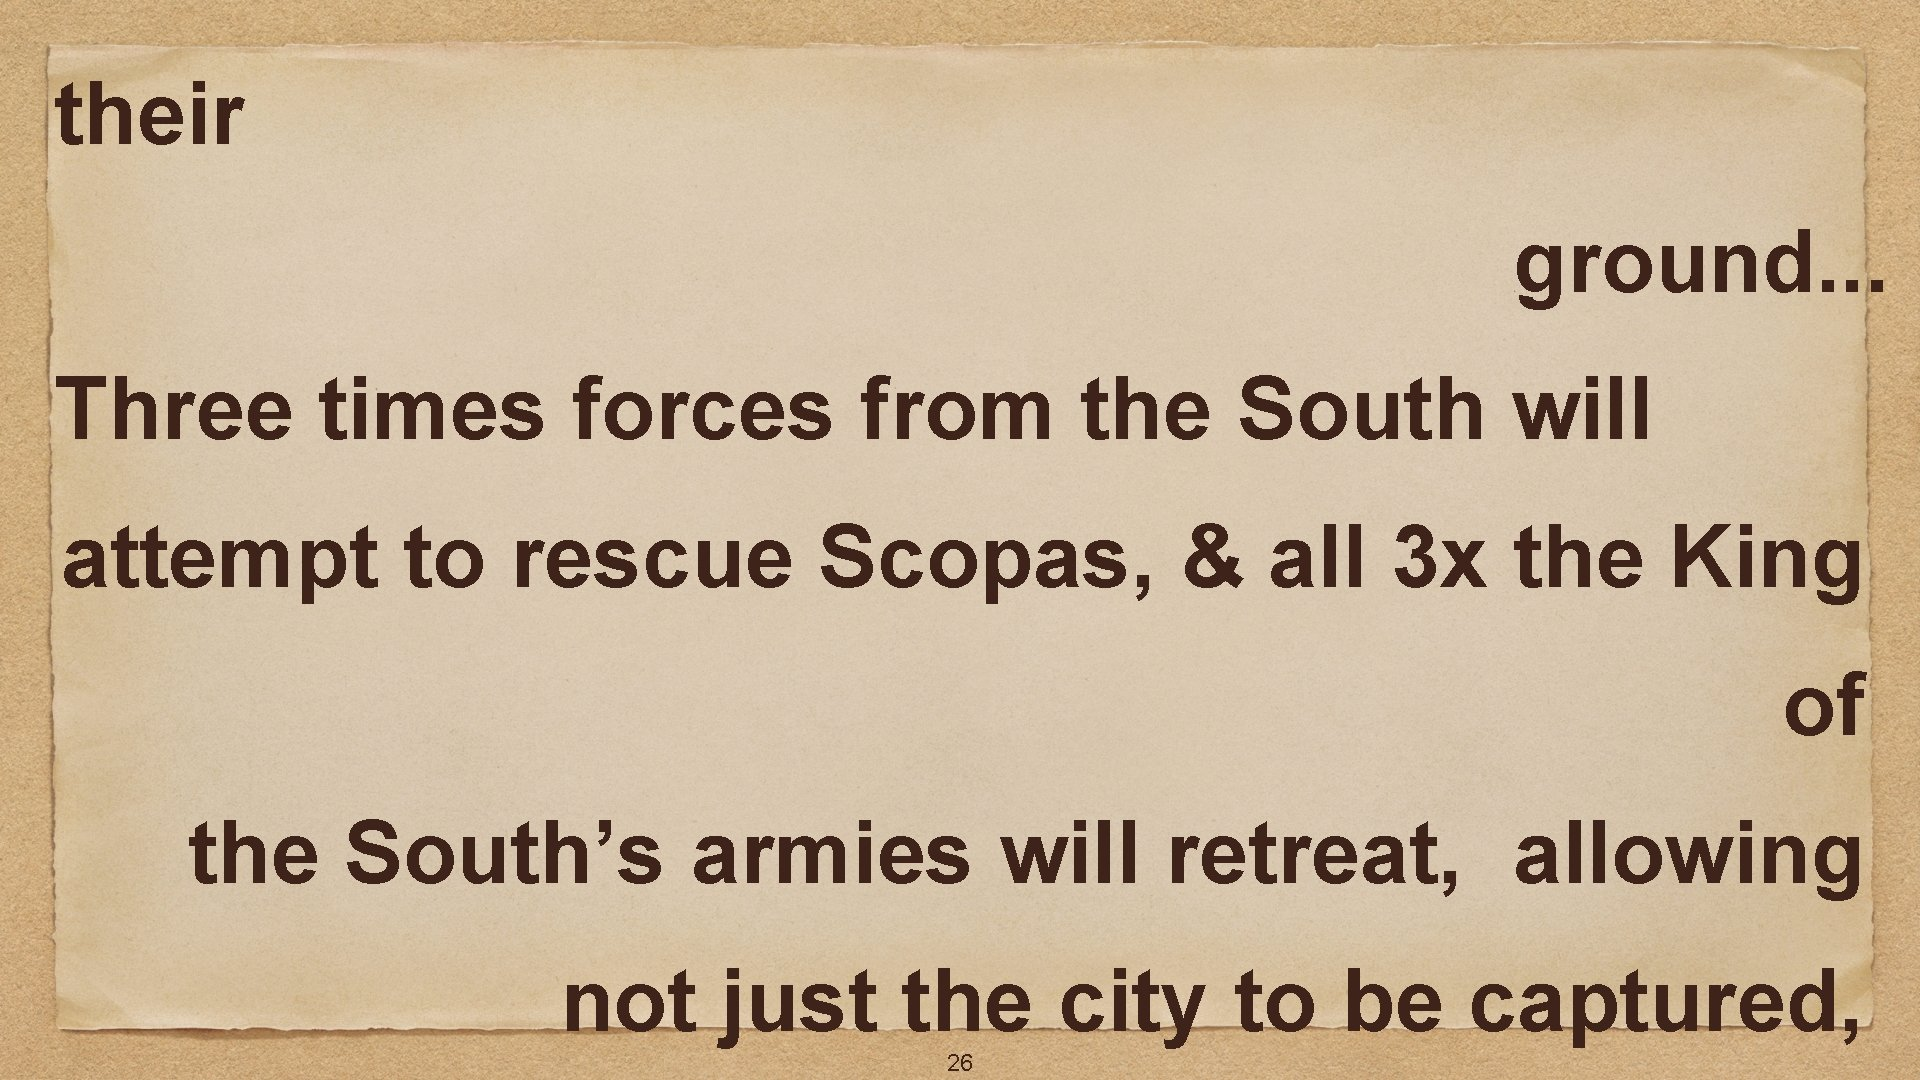 their ground. . . Three times forces from the South will attempt to rescue